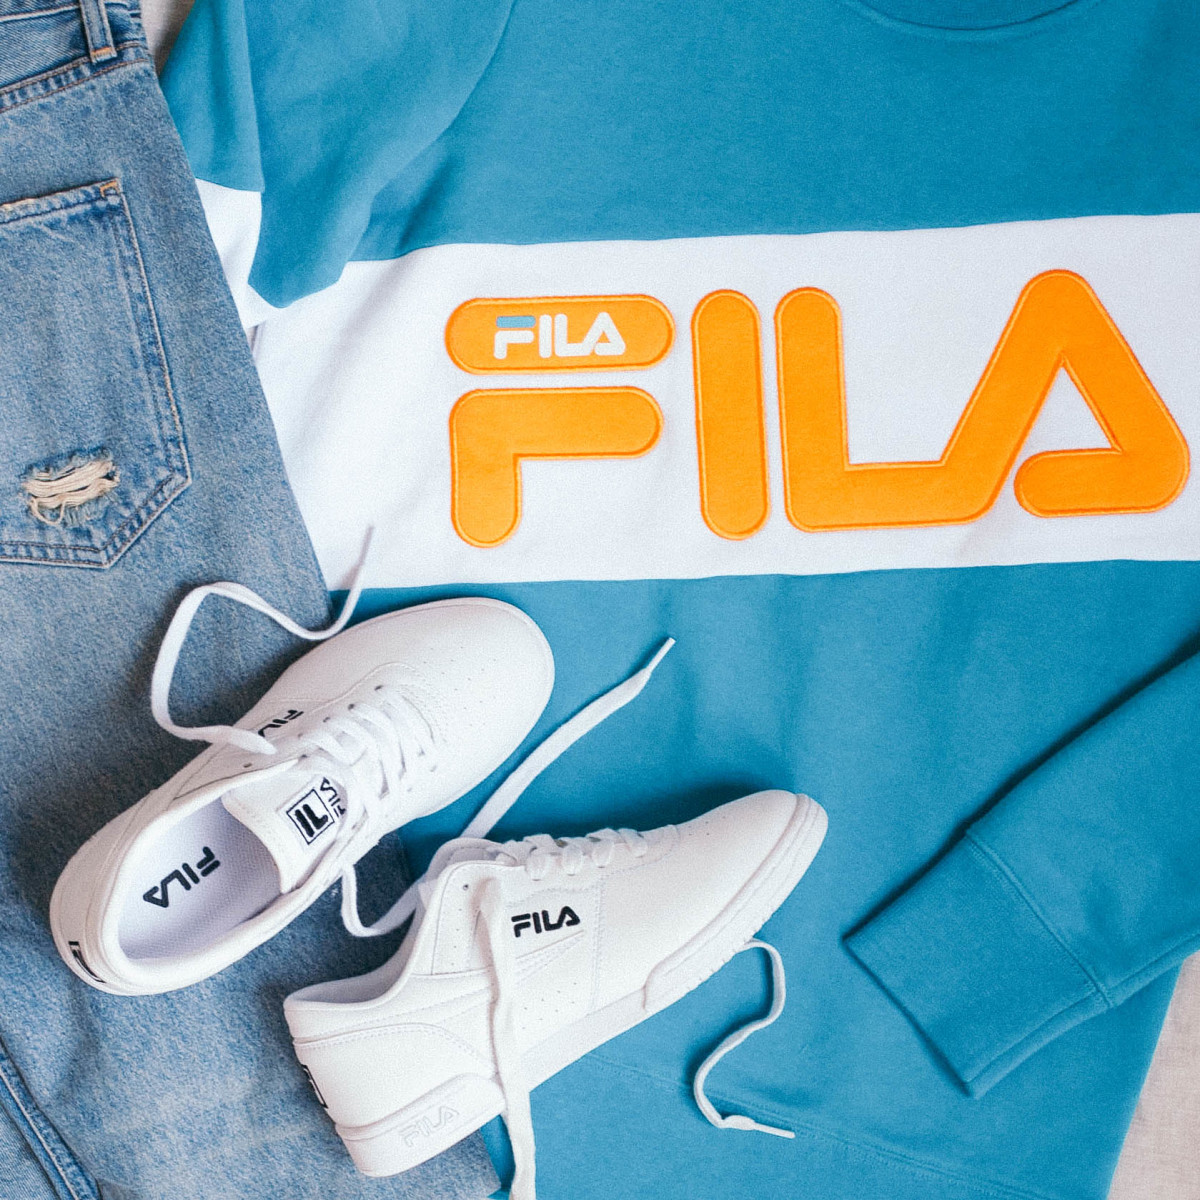 O-fits. Photo: FILA